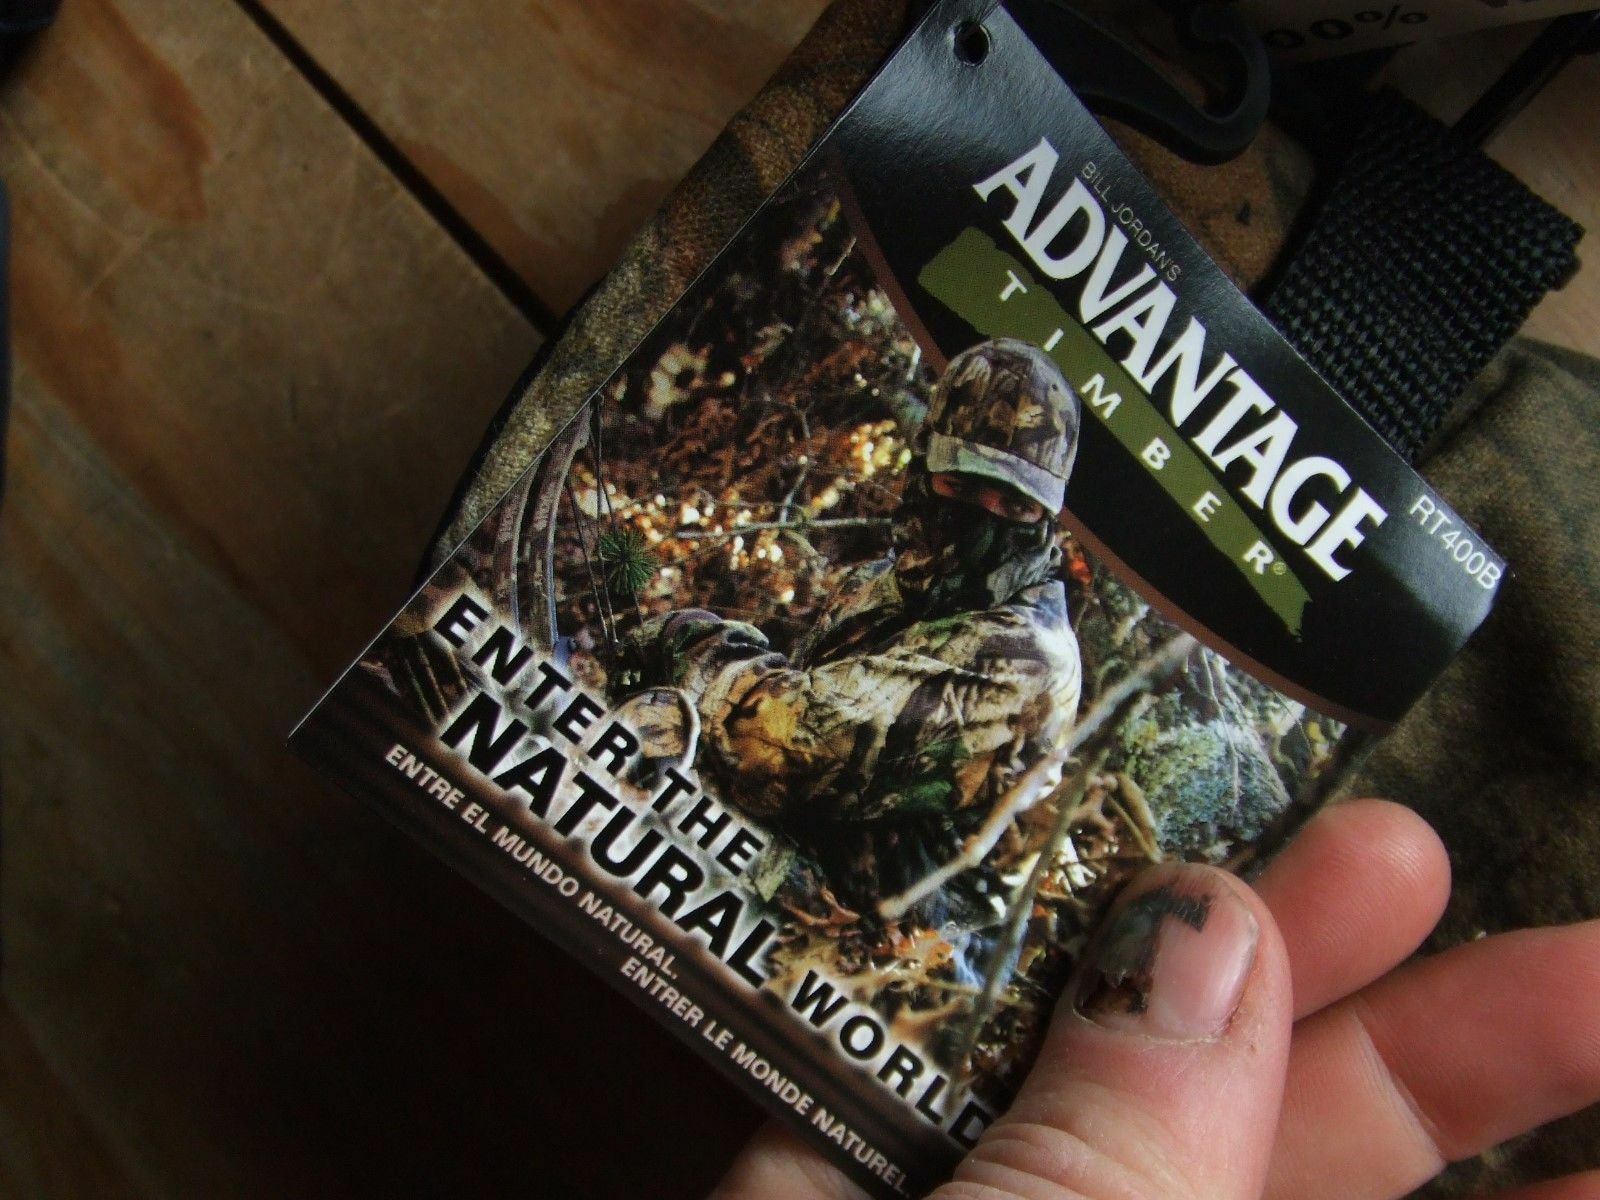 WeißWATER REALTREE ADVANTAGE WATERPROOF TIMBER CAMO WATERPROOF ADVANTAGE LINED HUNTING GLOVES XL 27109e